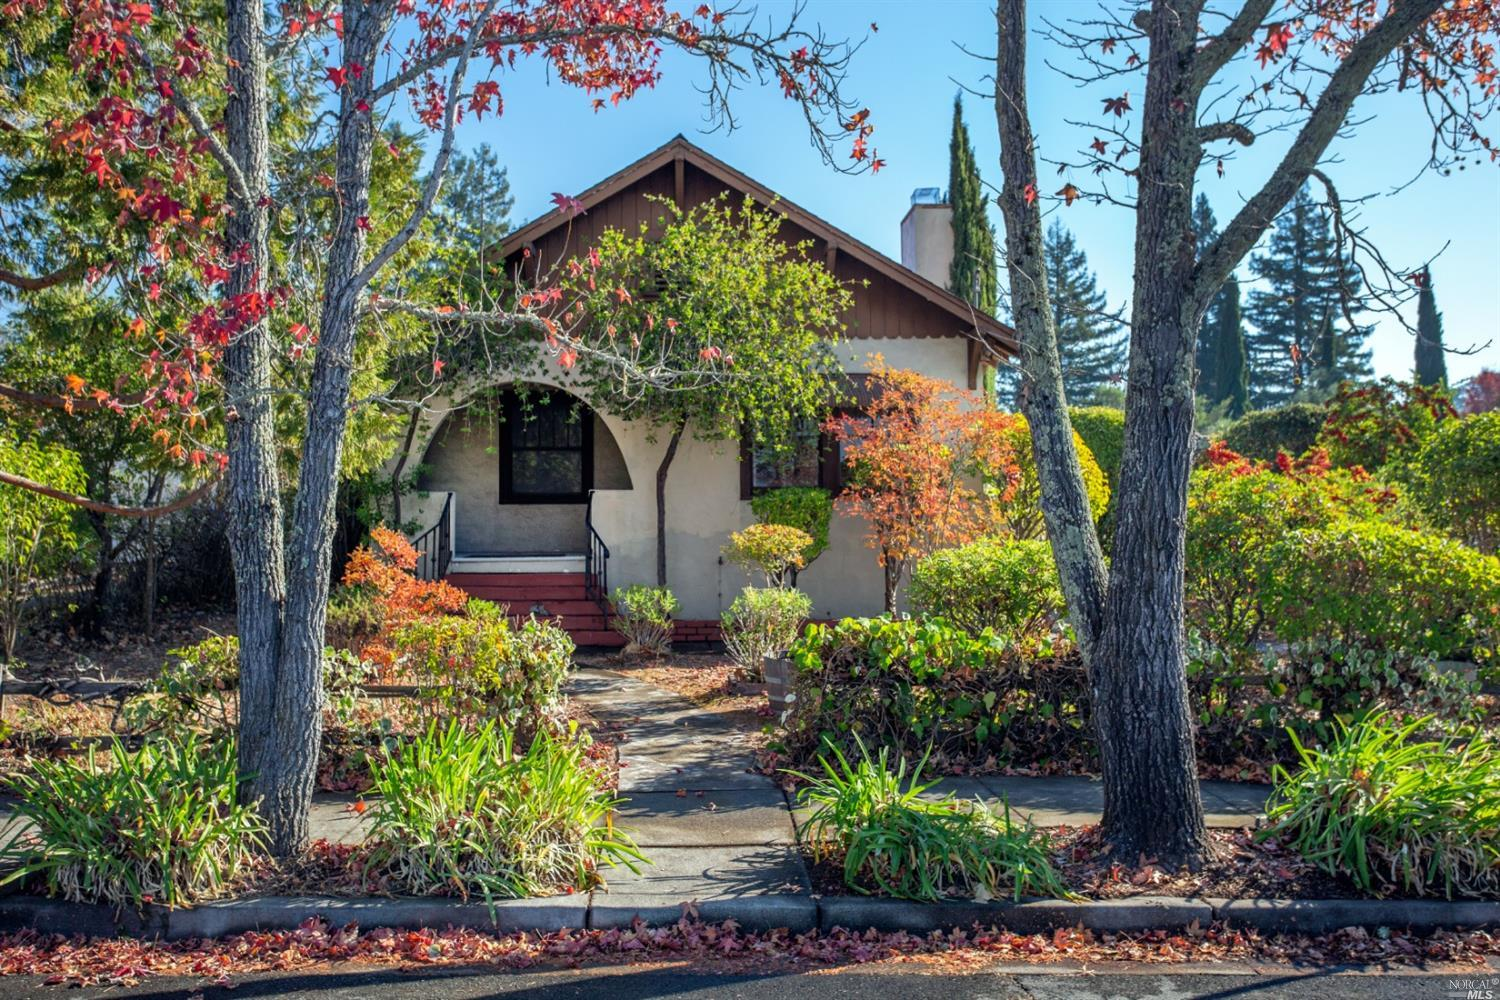 Fabulous Eastside location, great potential for remodel, close to bike path and plaza. Vineyard view